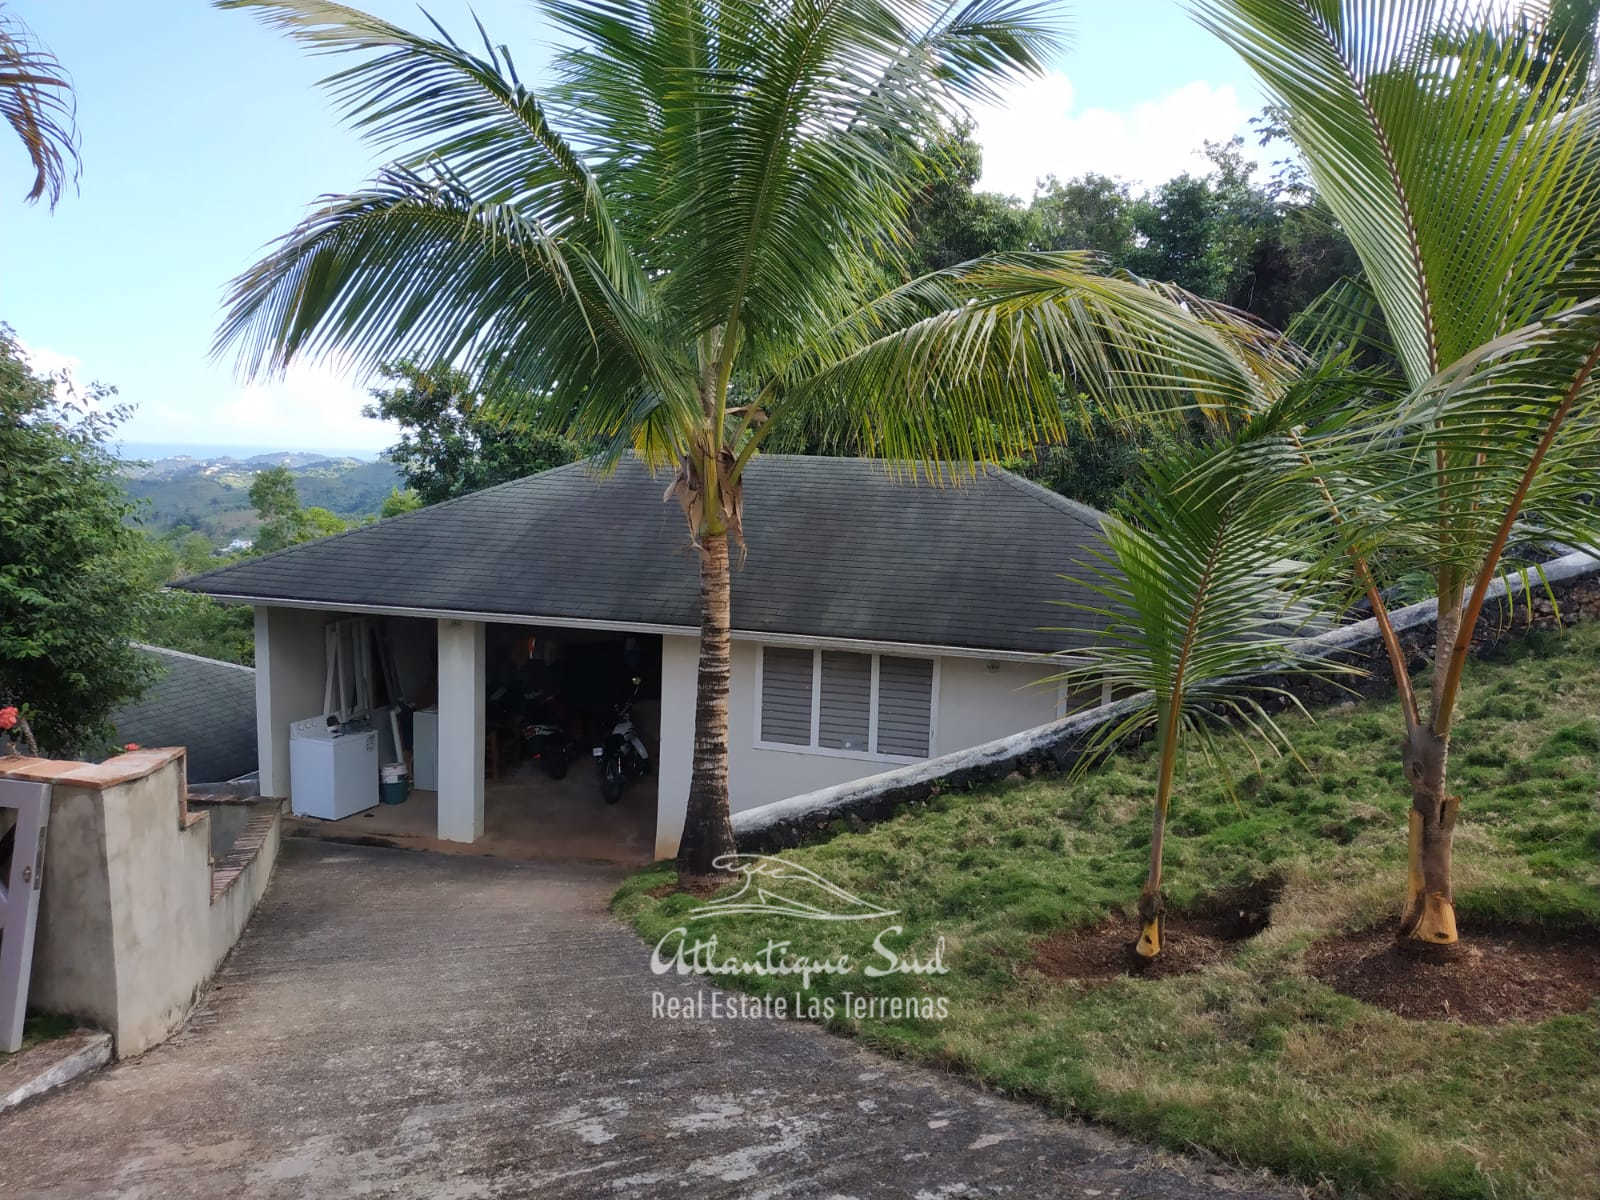 Hillside house for sale in Las terrenas15.jpg